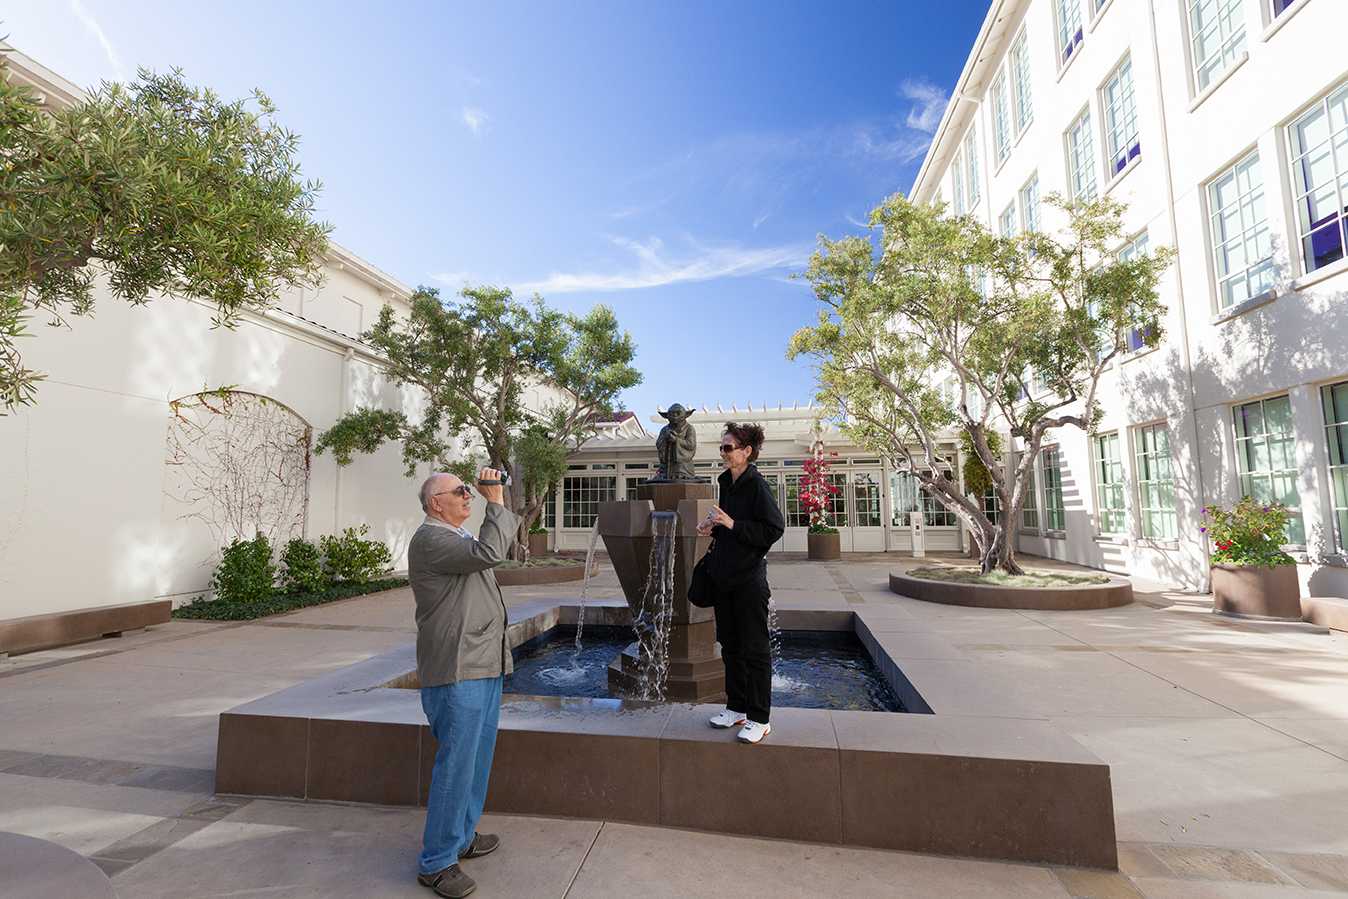 My parents with Yoda on the Lucasfilm Campus in San Francisco